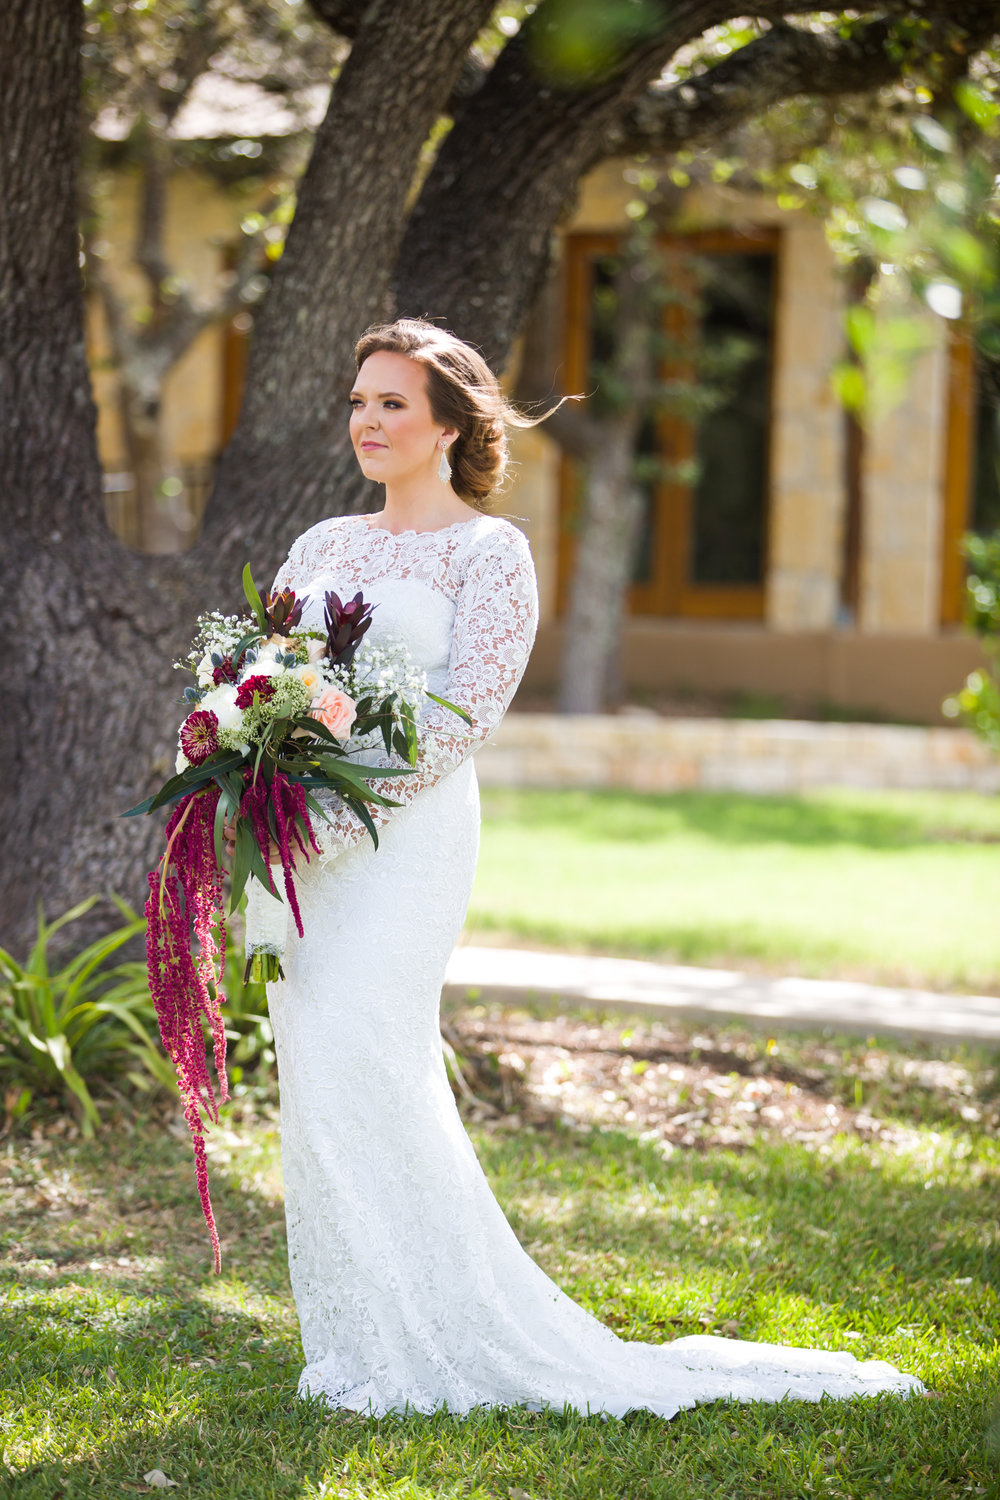 austin-wedding-colorful-14.jpg